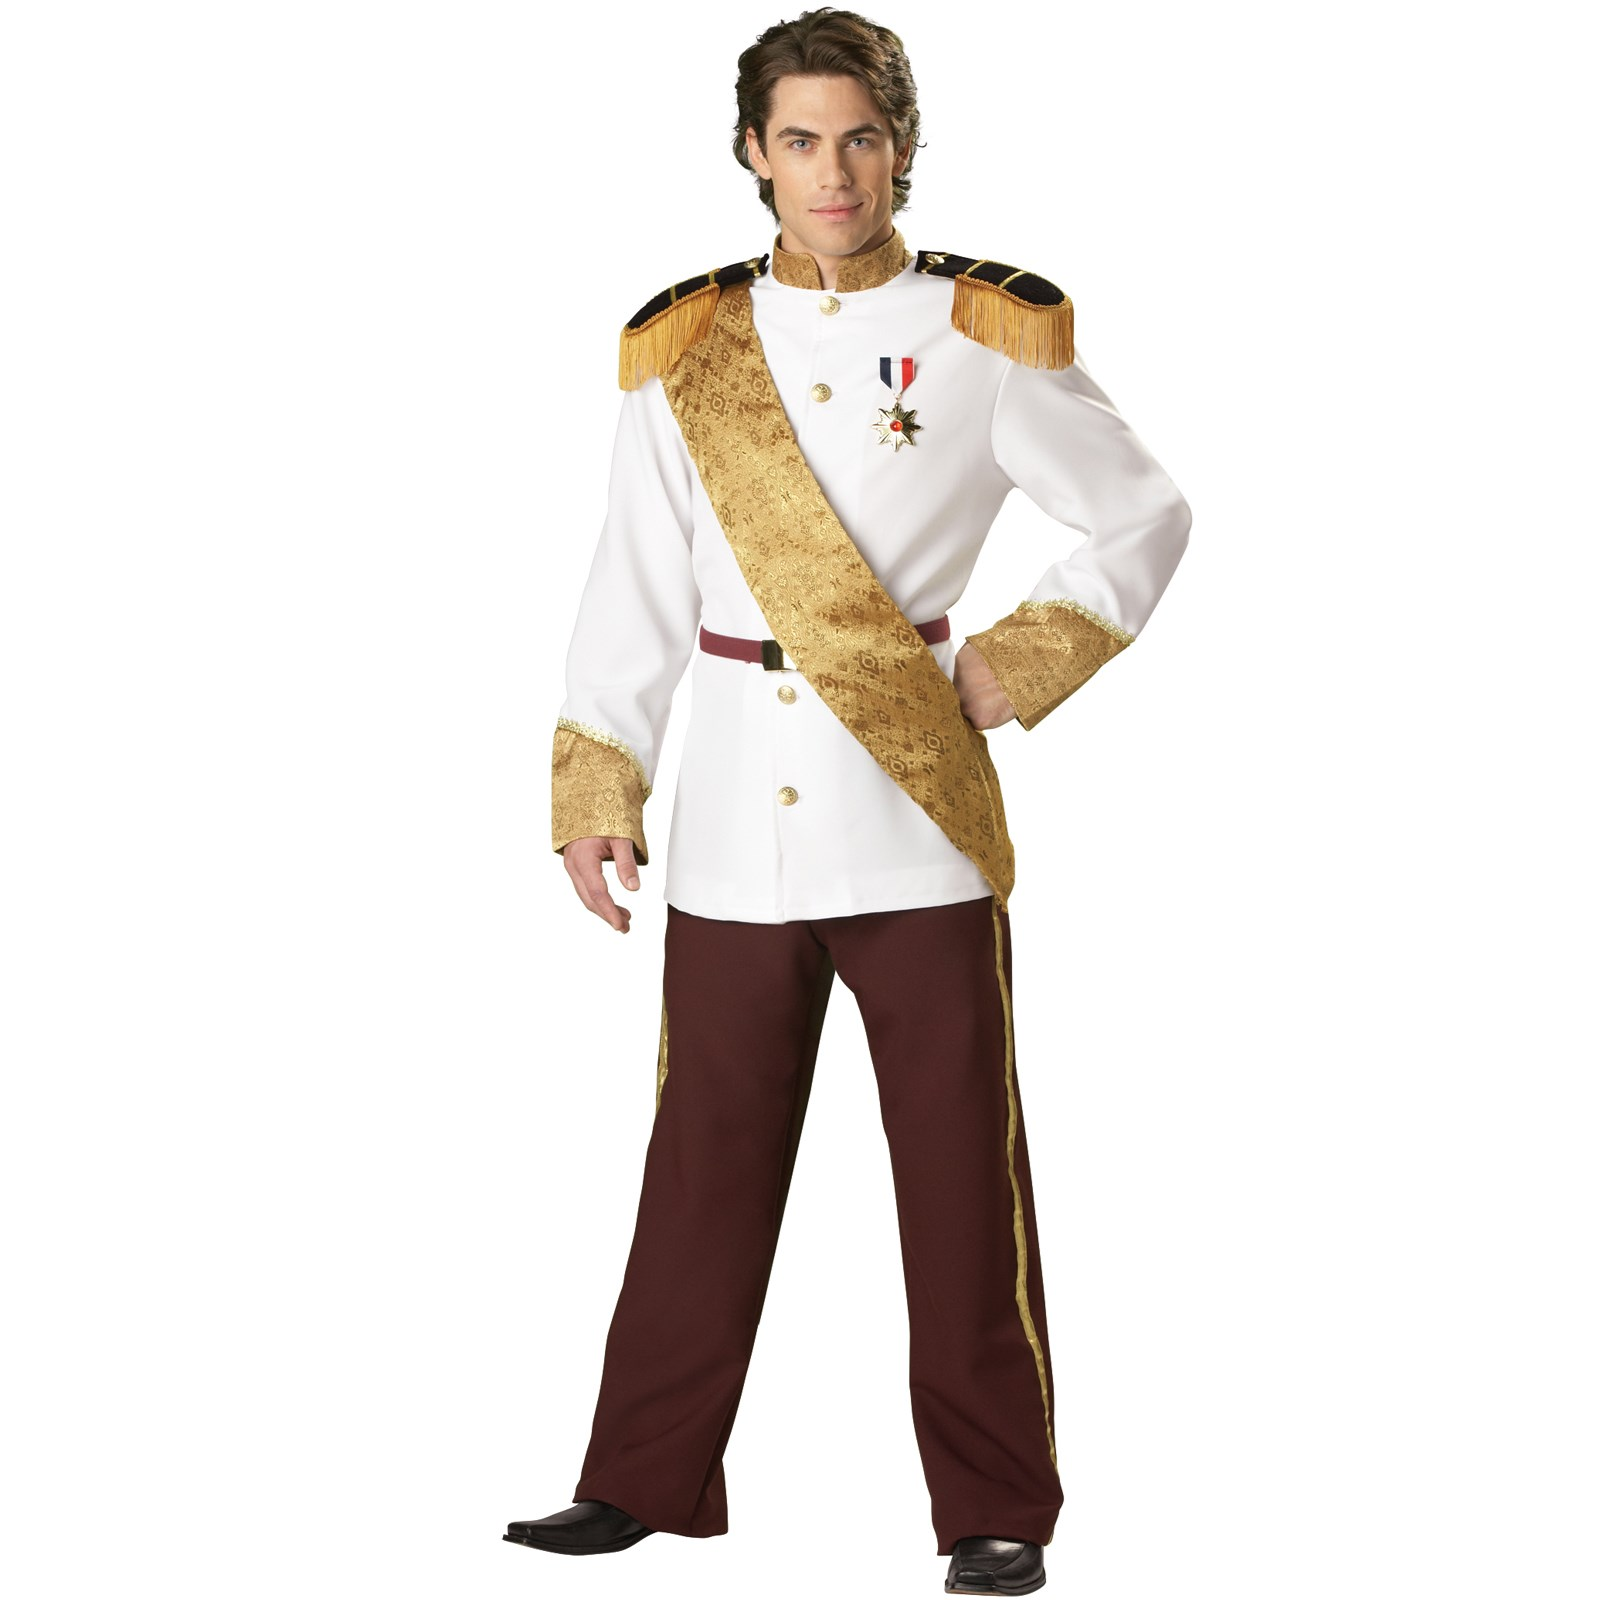 Image of Prince Charming Elite Collection Adult Costume